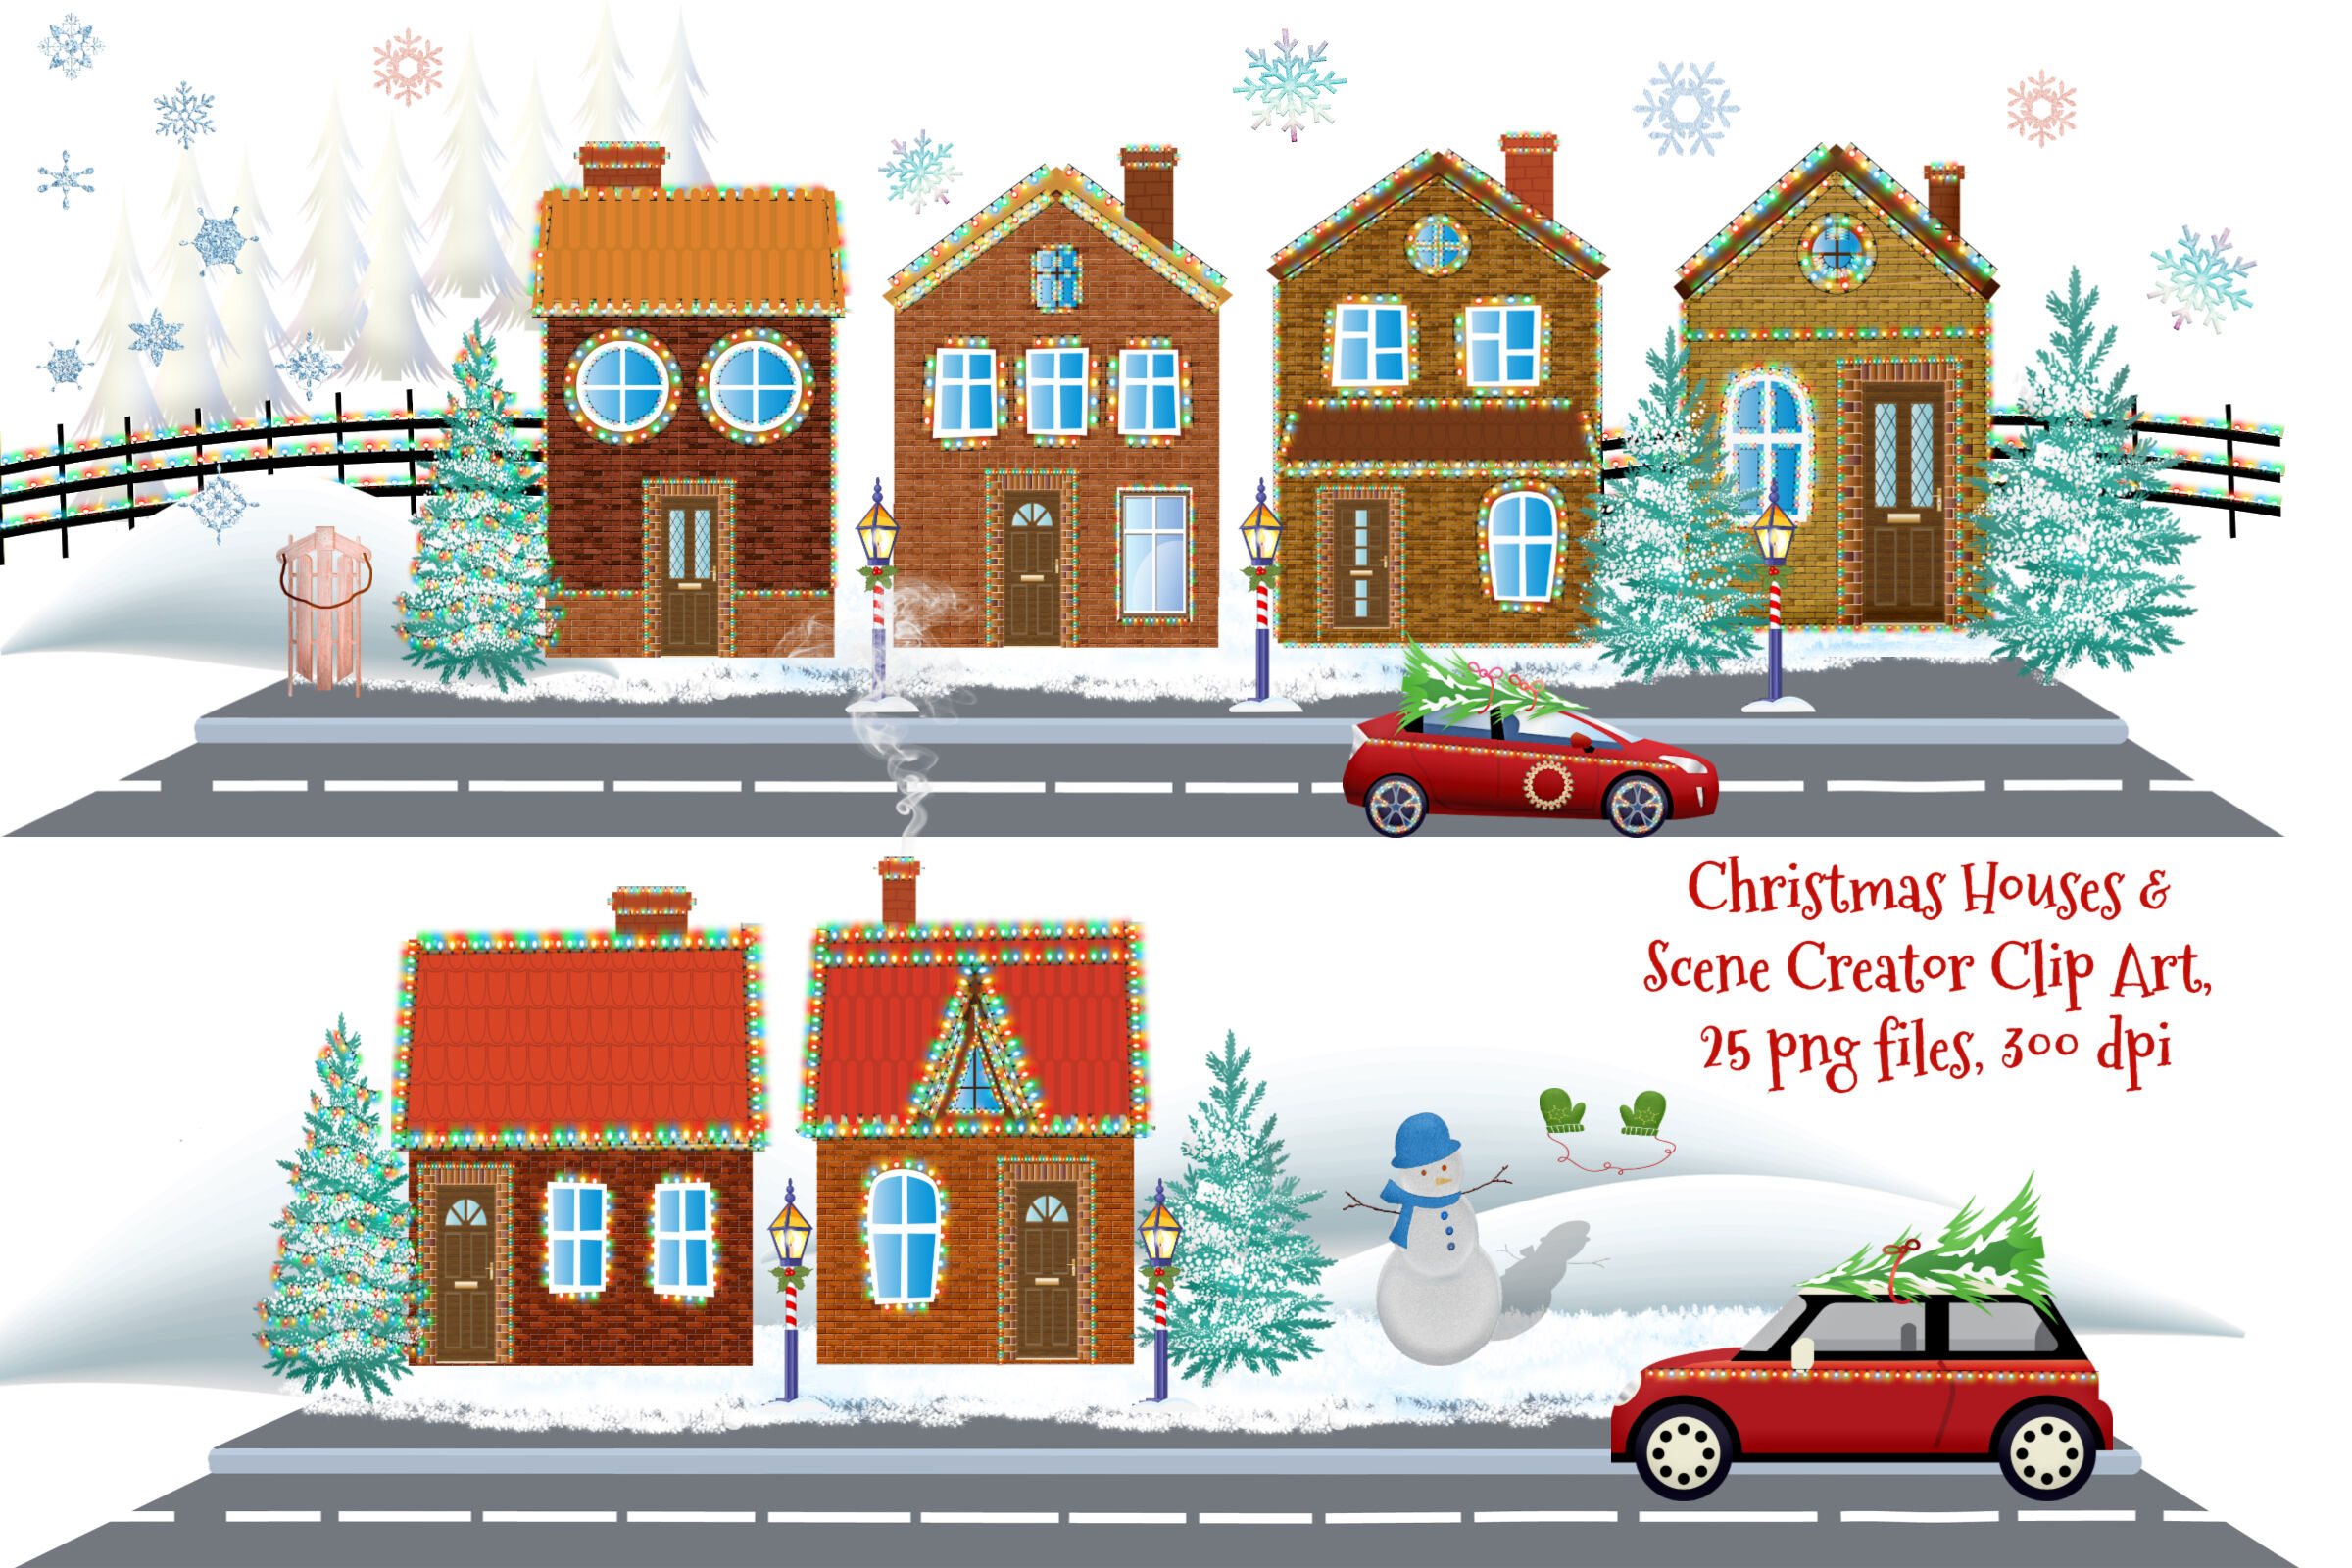 Christmas Houses And Scene Creator Clip Art By Me And Amelie